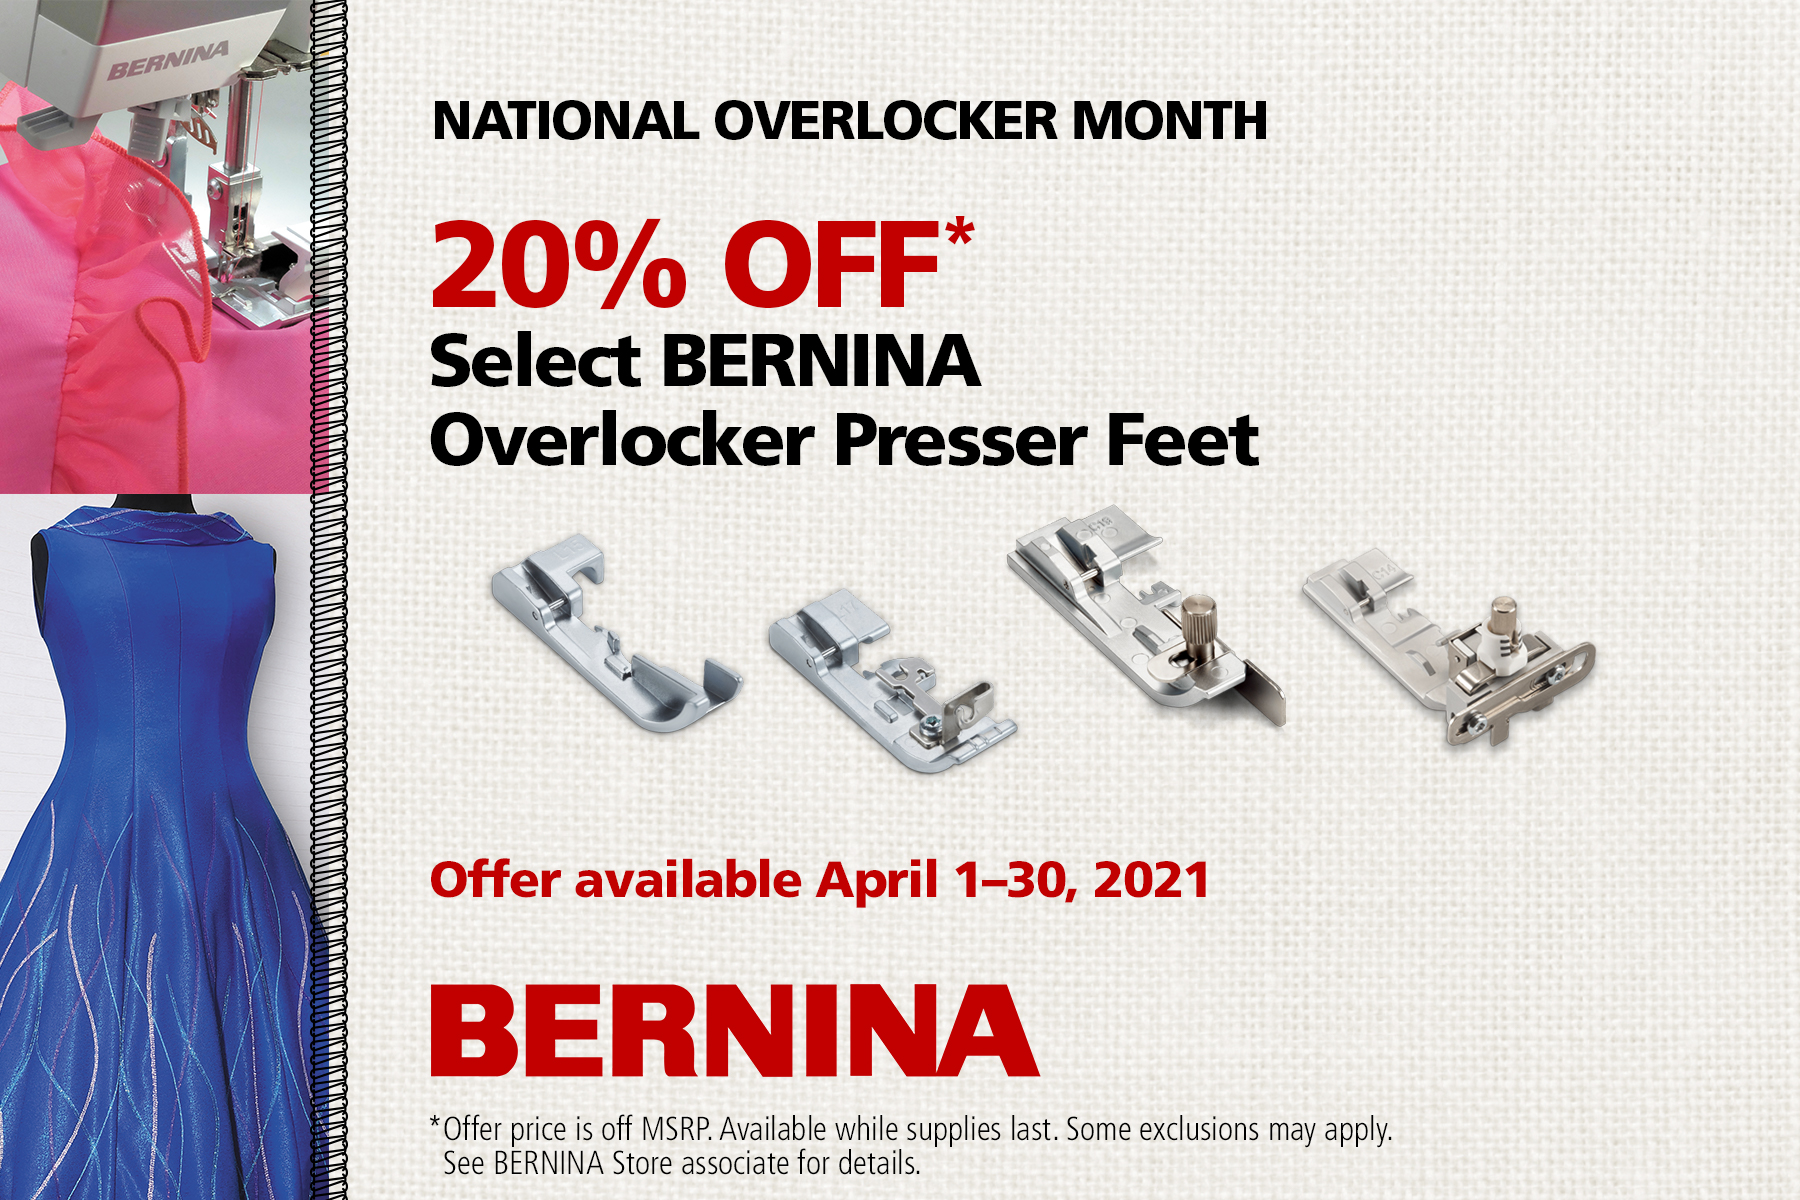 Bernina National Overlocker Month Feet Promotion